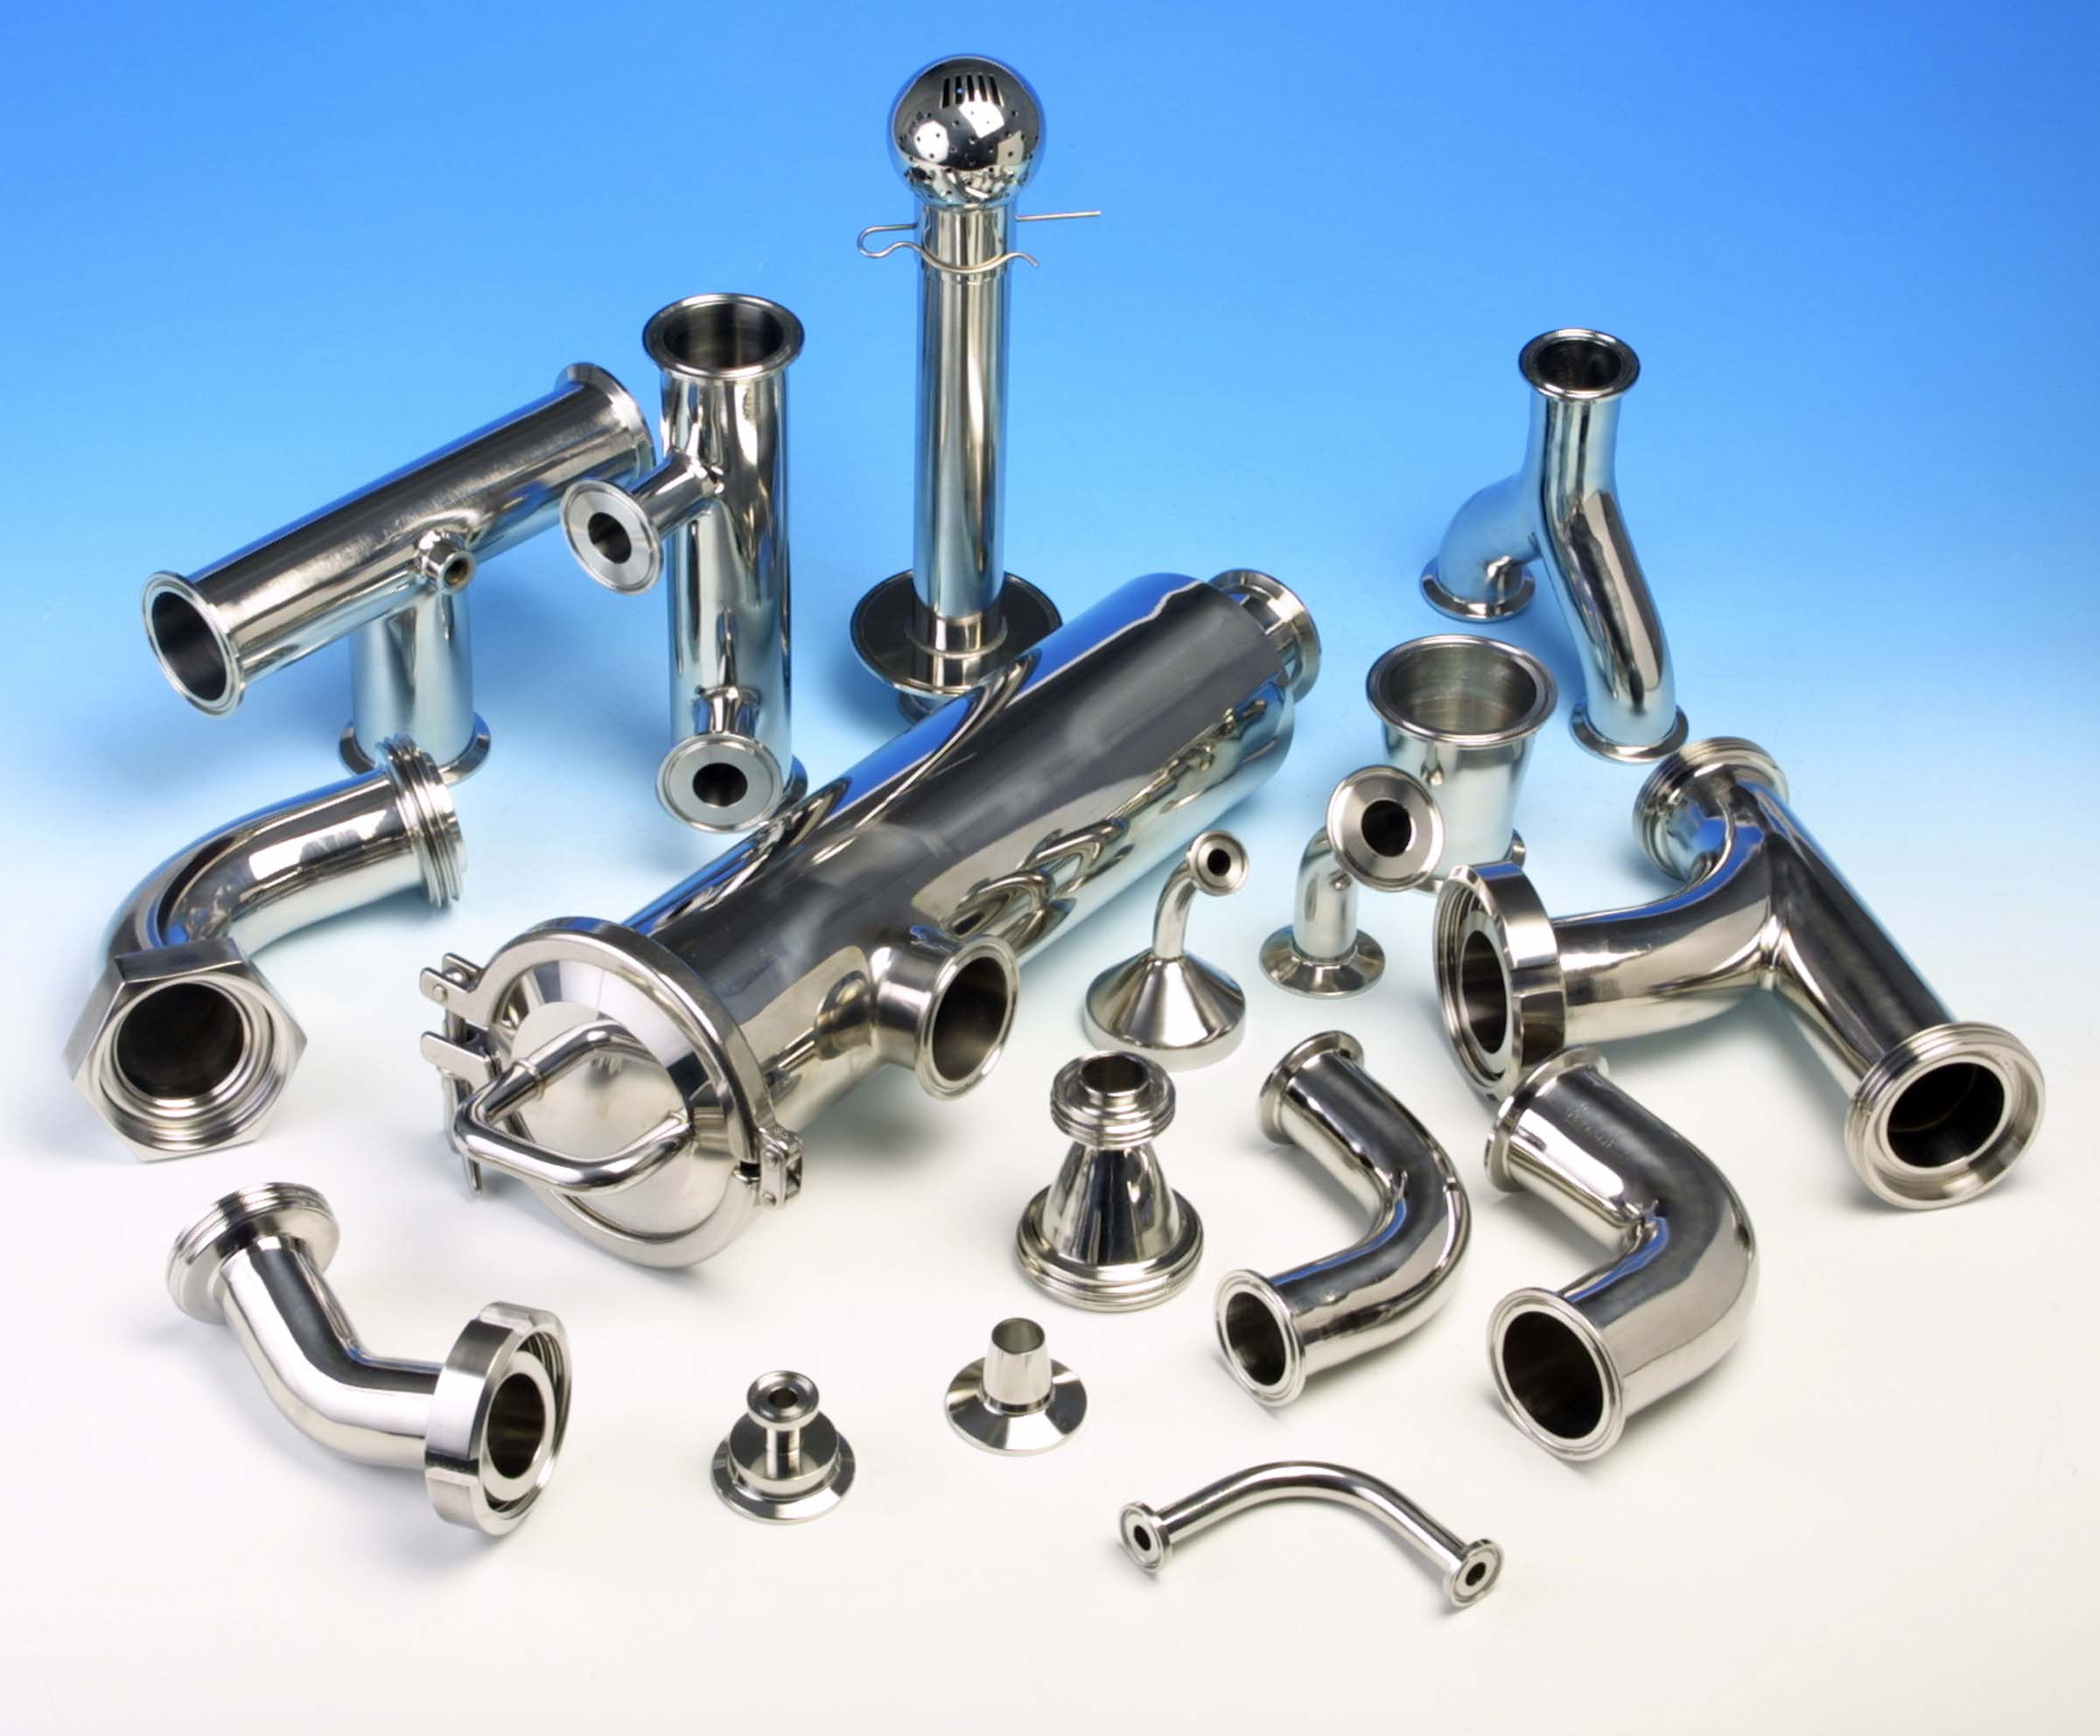 Where can you find stainless steel pipe fittings?